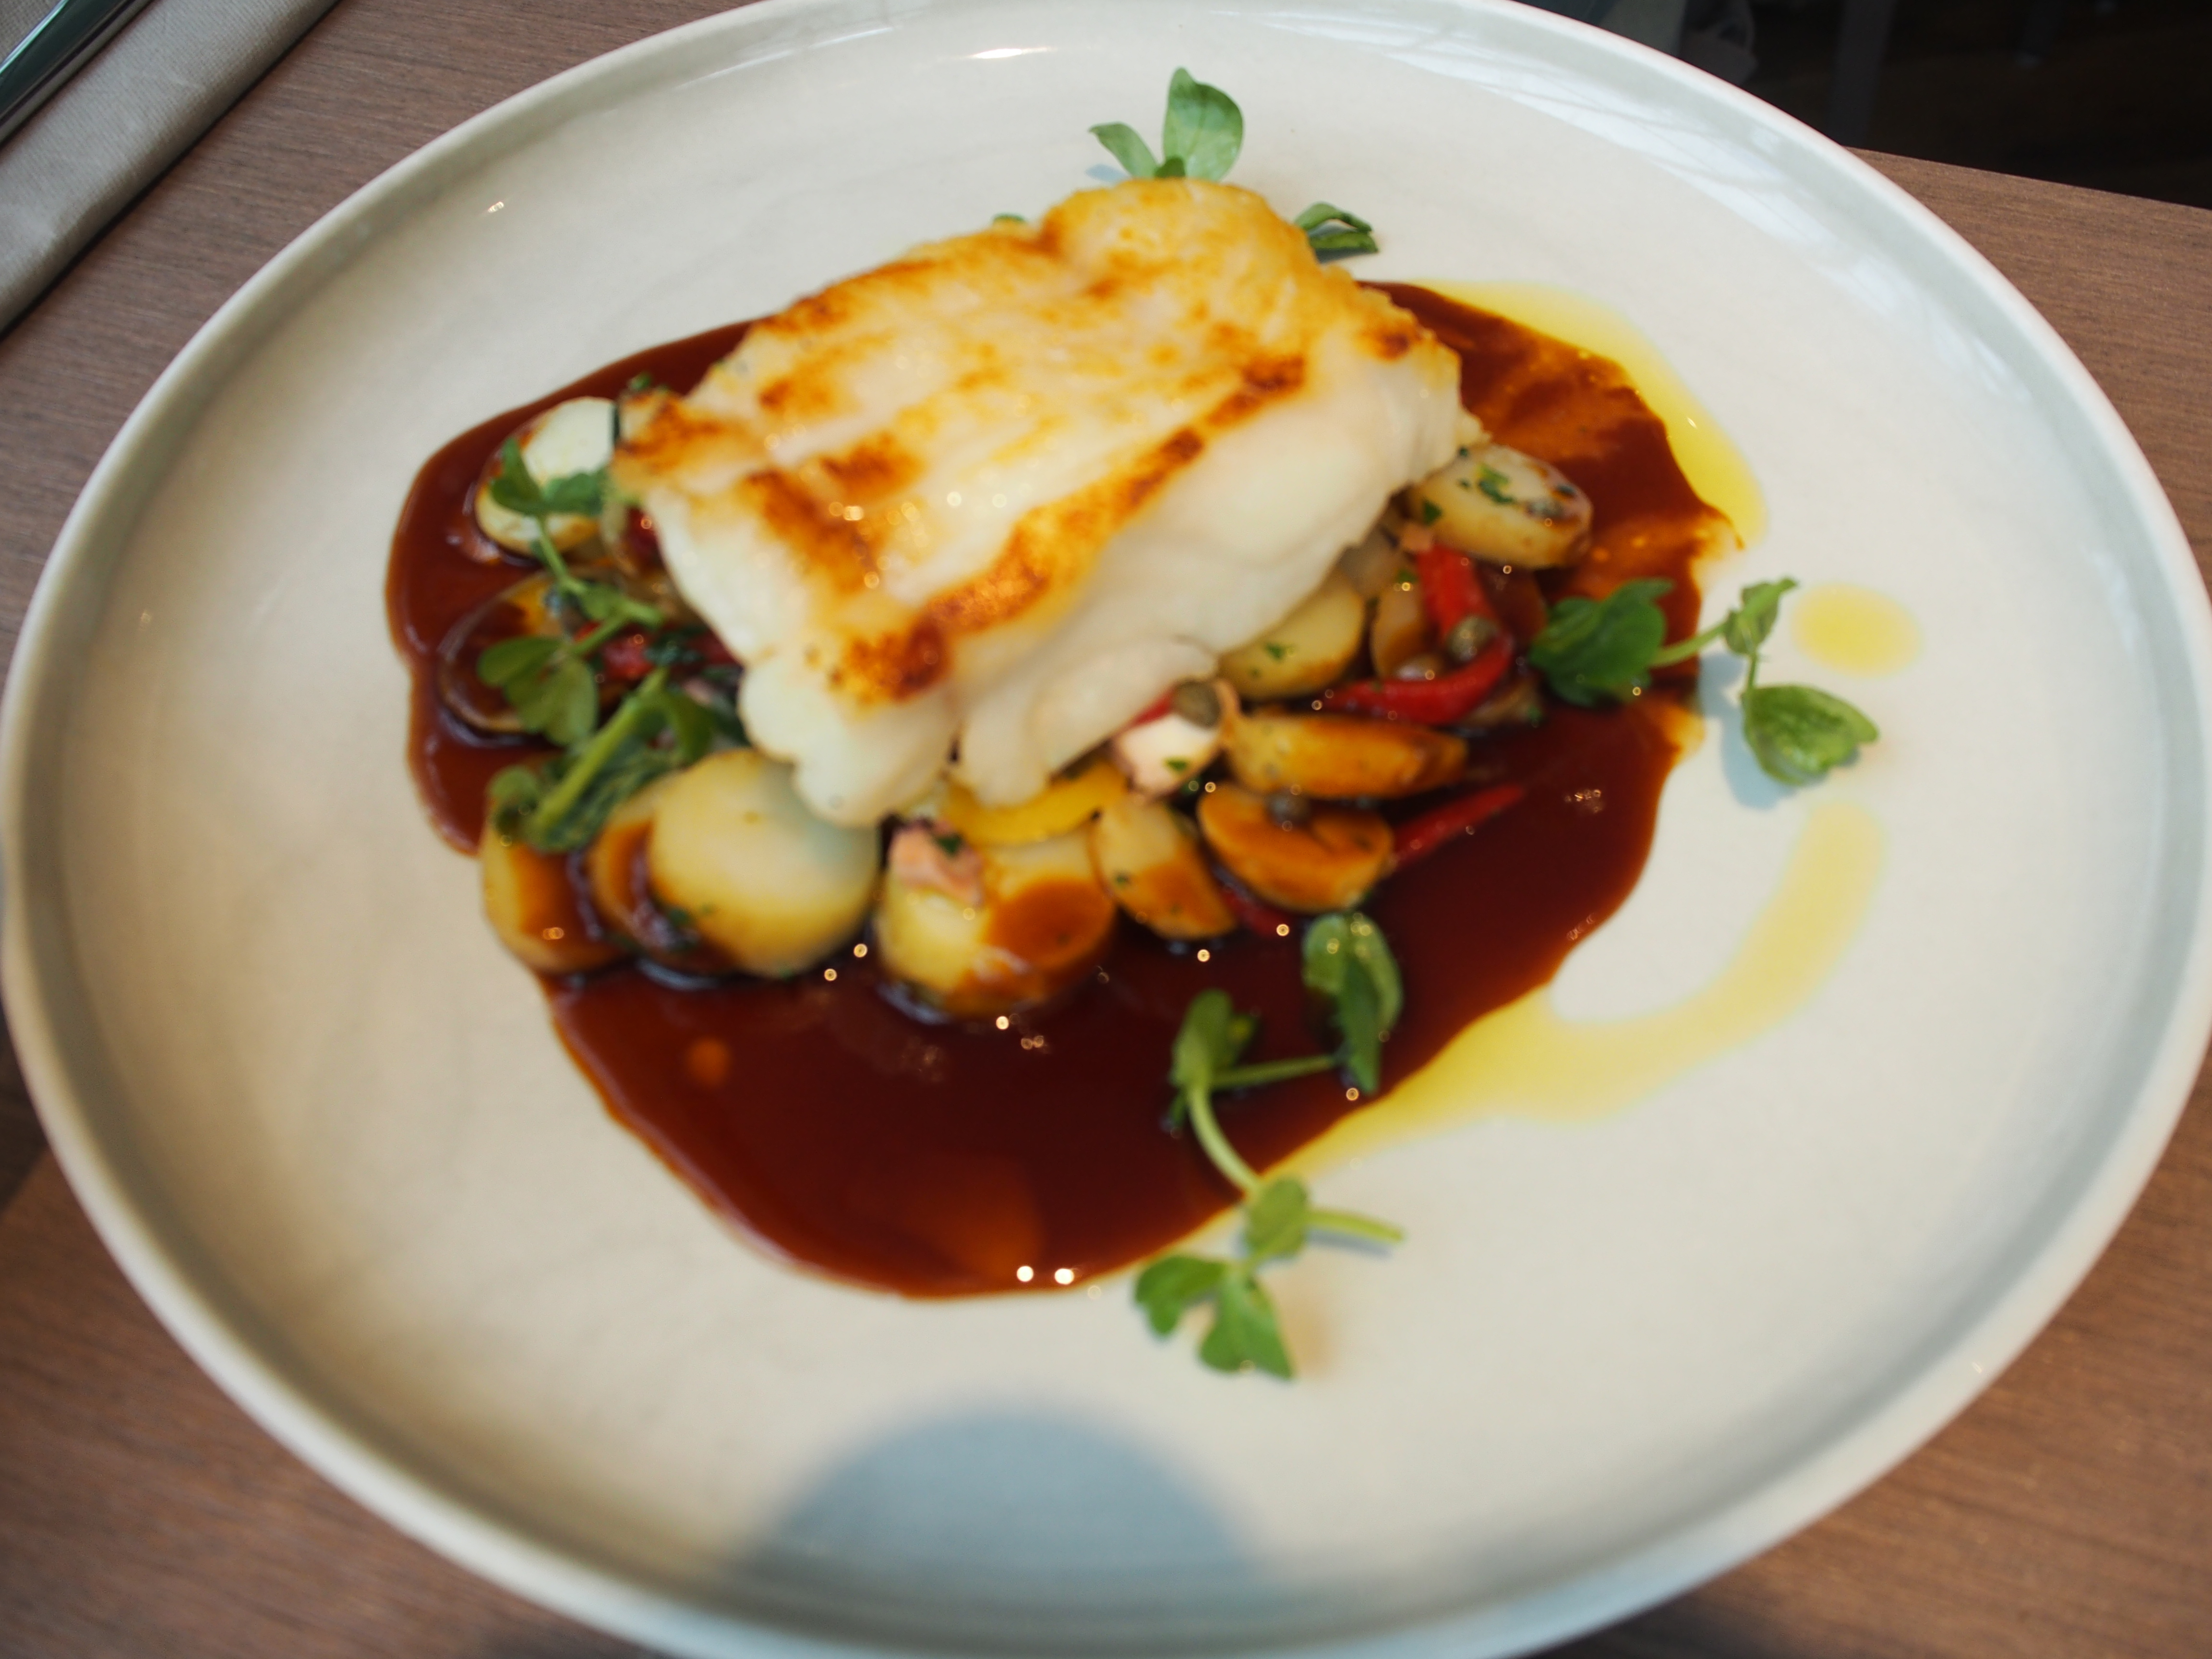 Peterhead cod confit octopus, new potato & preserved lemon salad £24.00